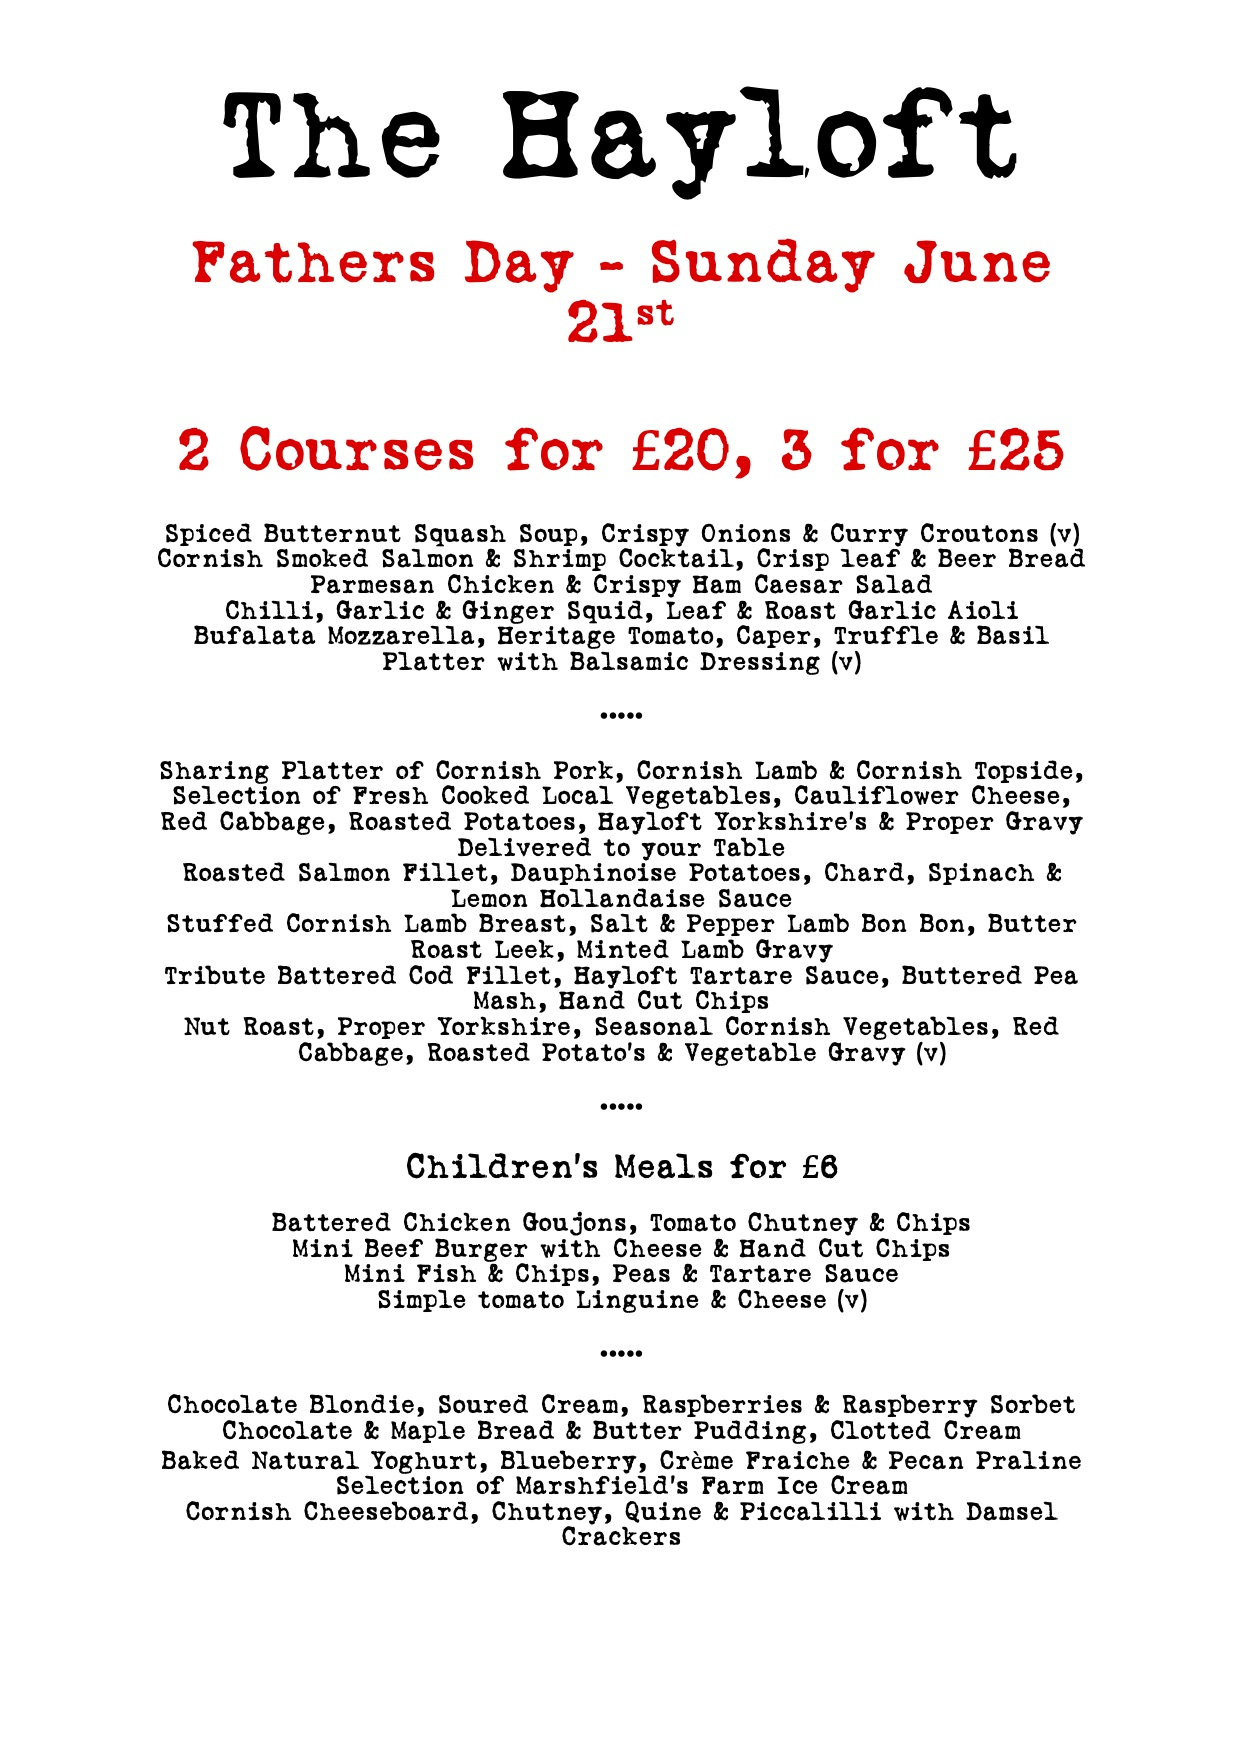 Fathers Day at The Hayloft